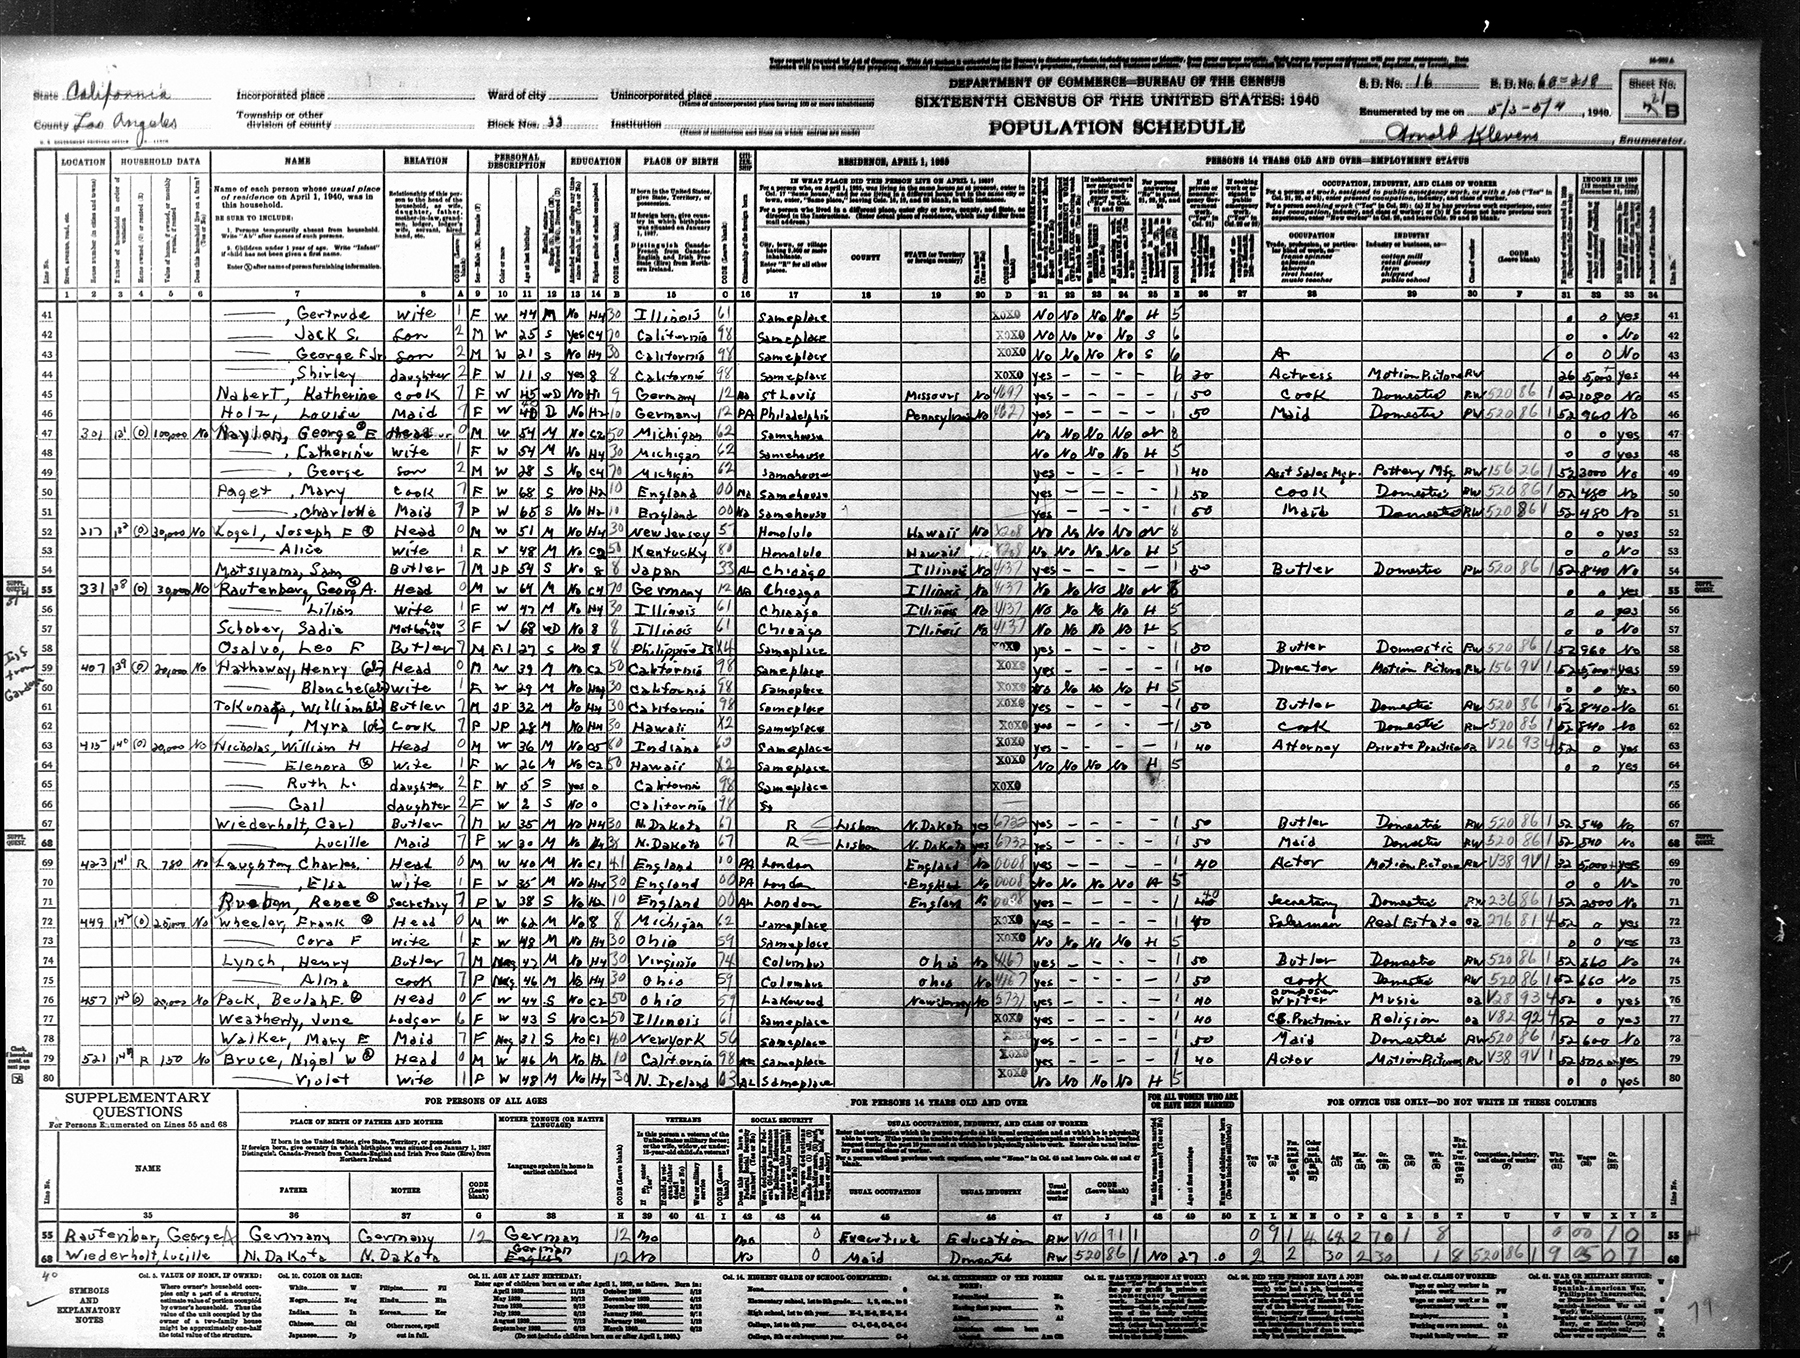 Shirley temple in the 1930 census living with her family at the age of